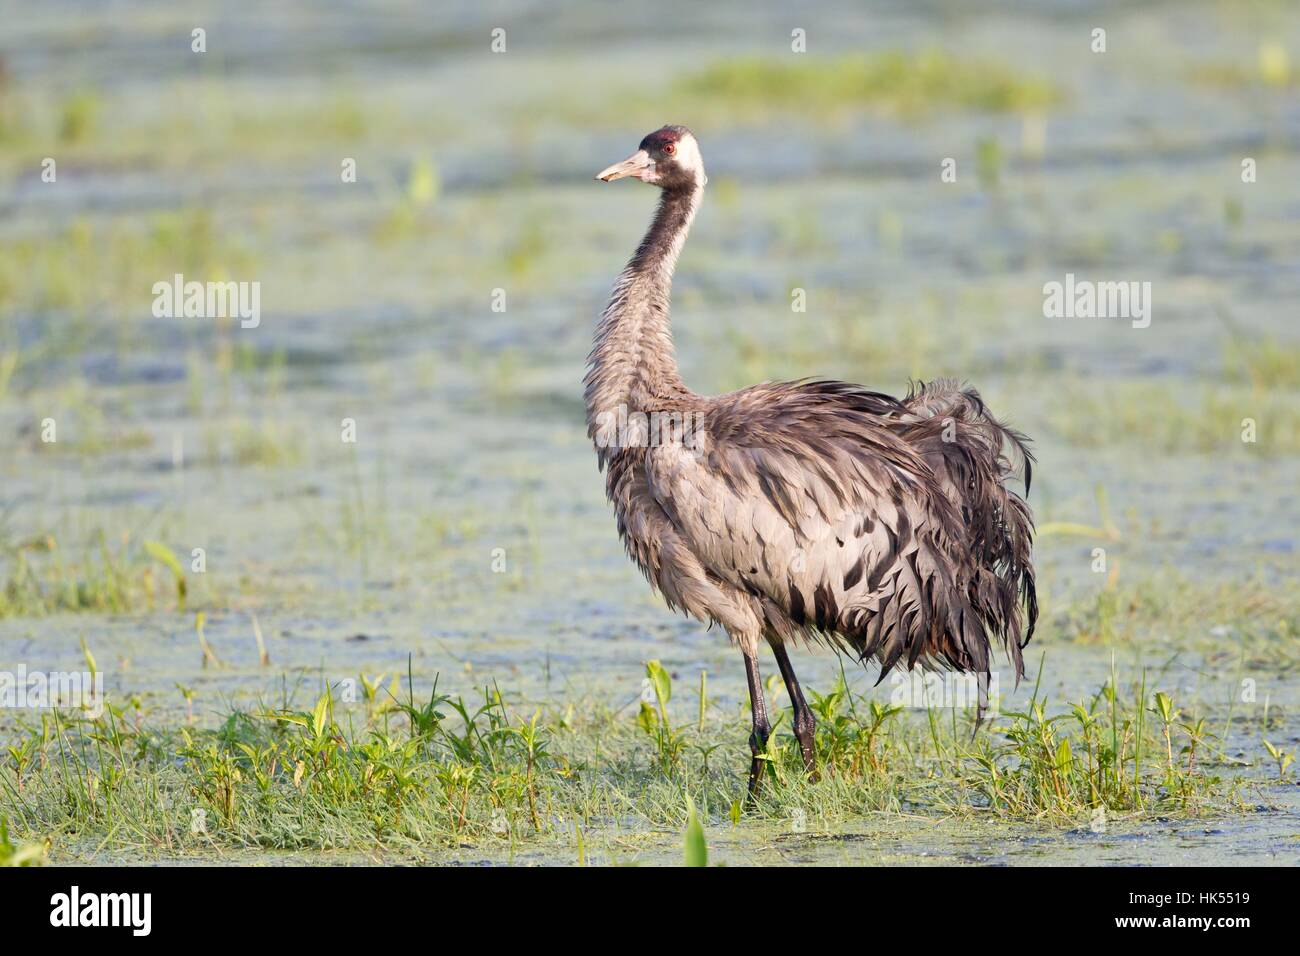 feathers, feathering, crane, feathers, feathering, crane, grayer, grey, gray, Stock Photo